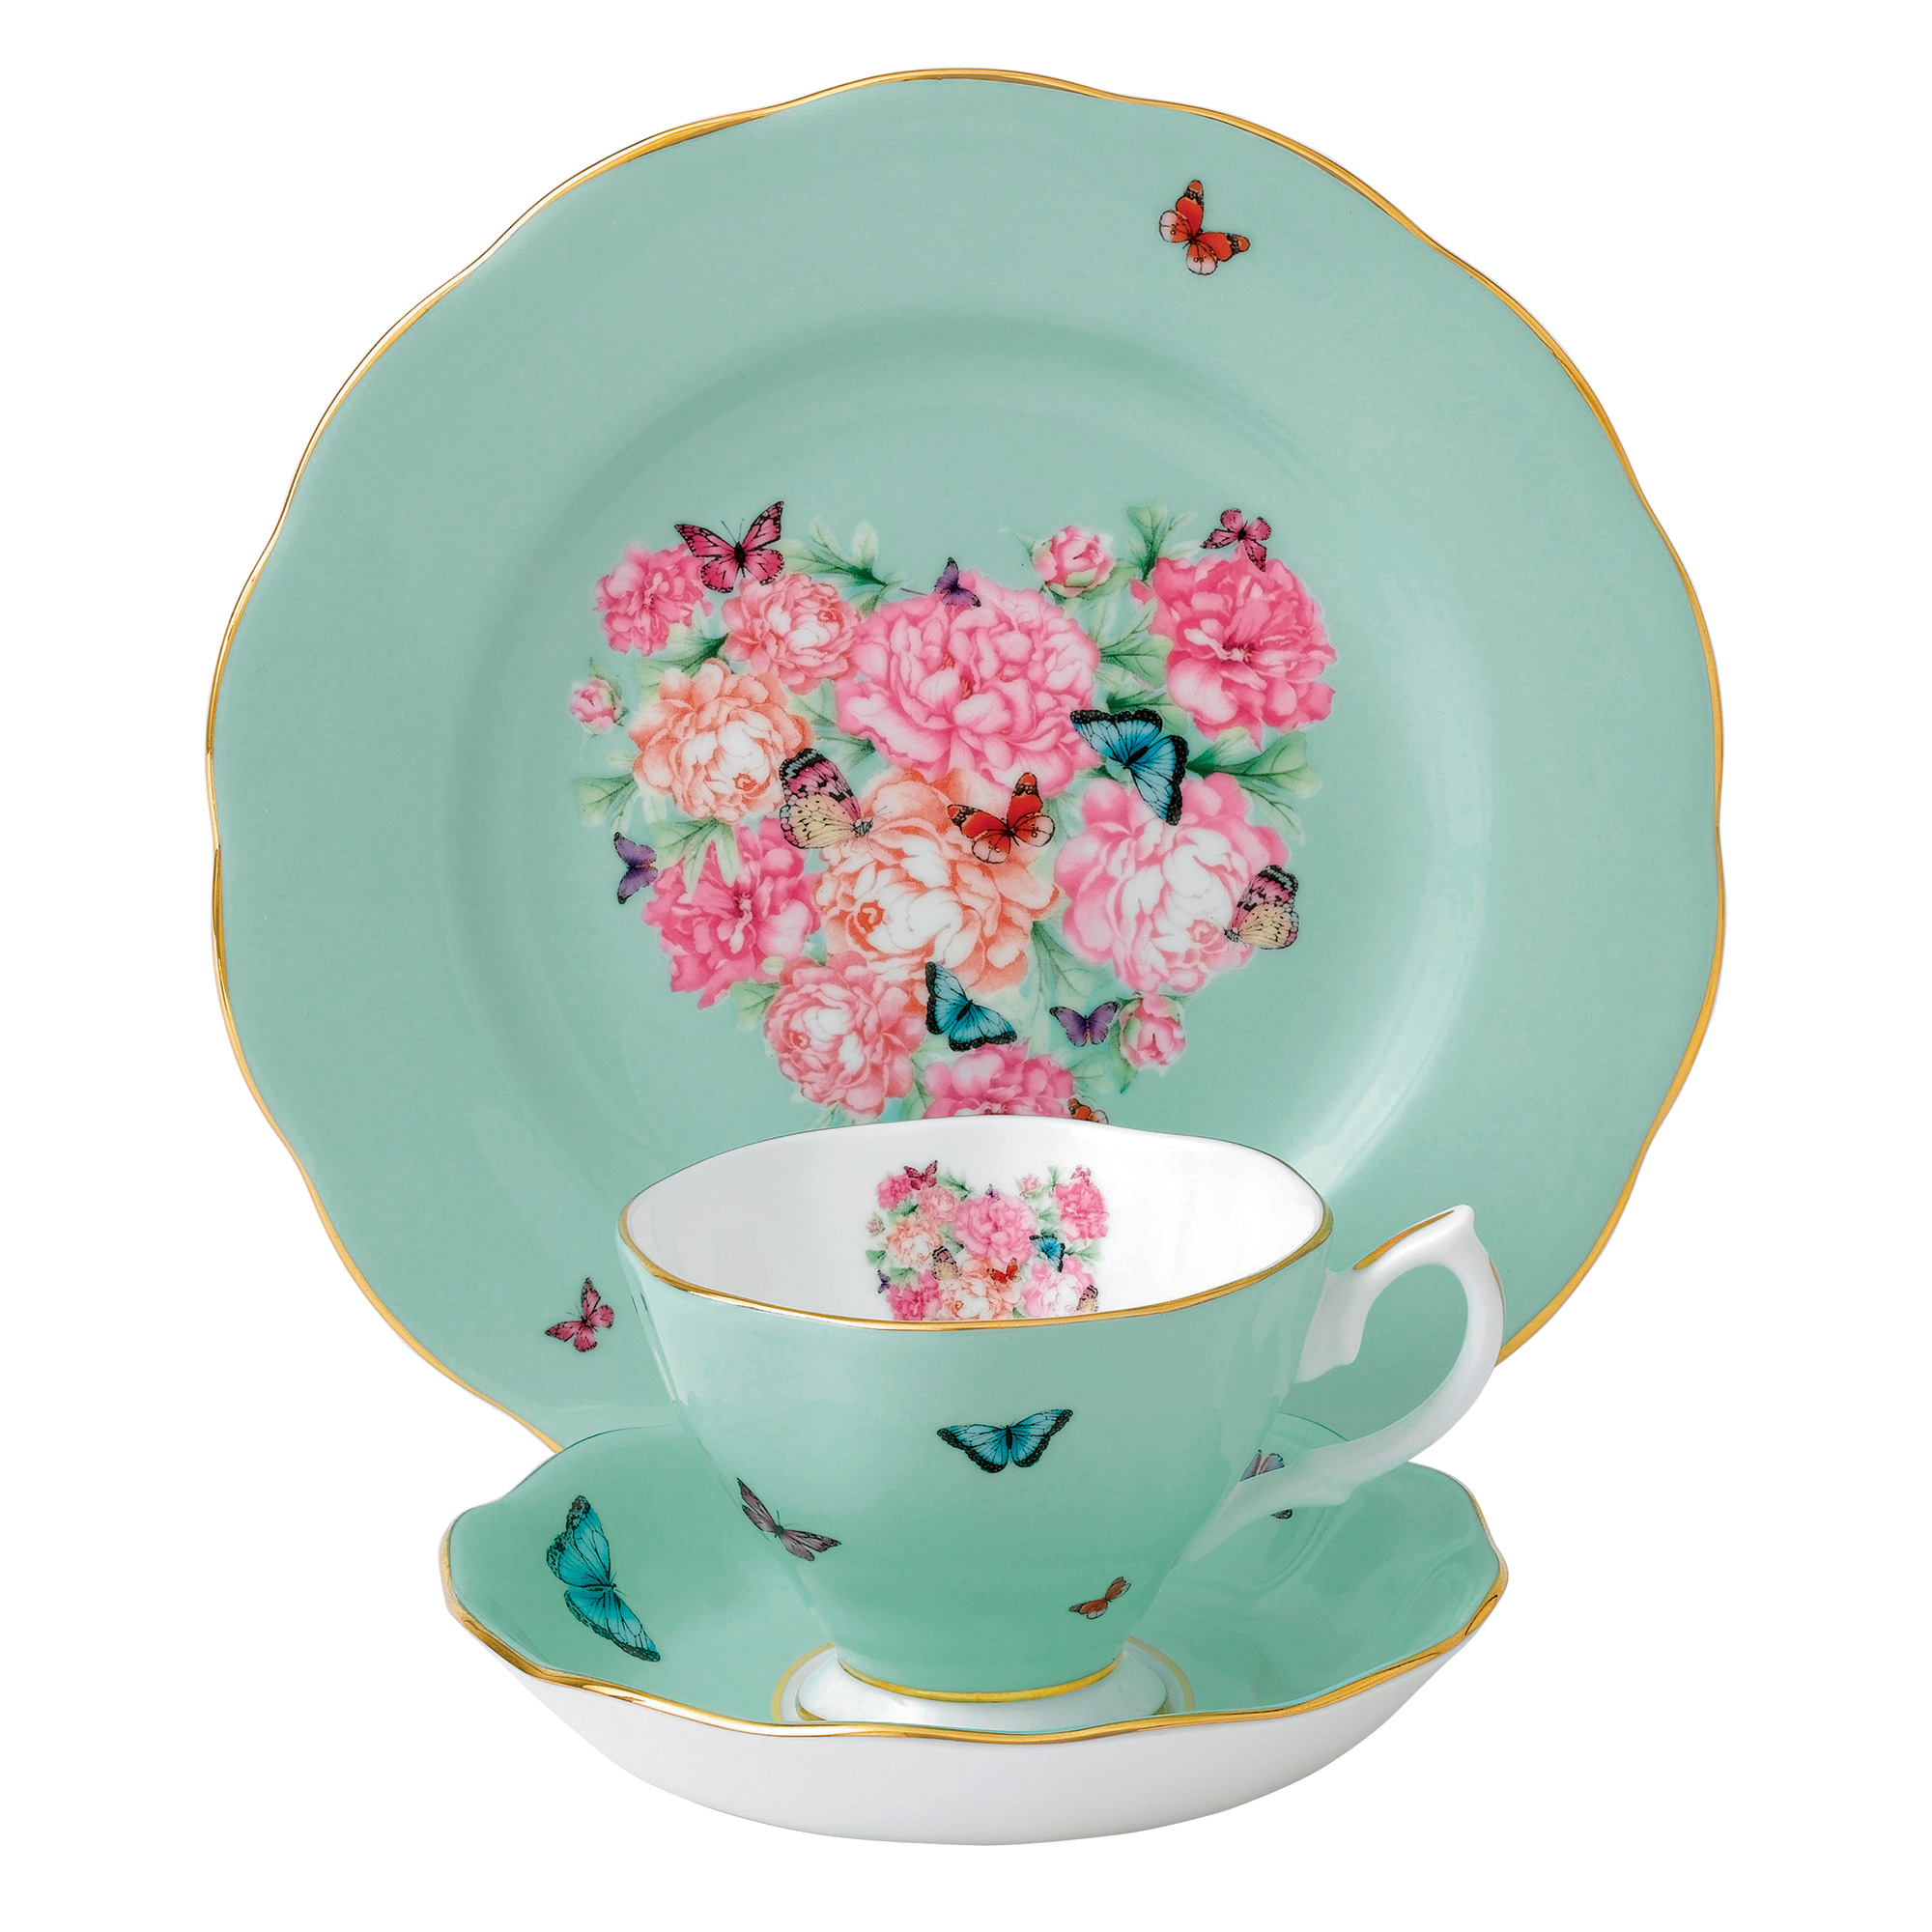 Miranda Kerr for Royal Albert Collection - Blessings 3 pc Set (Teacup, Saucer, Plate)